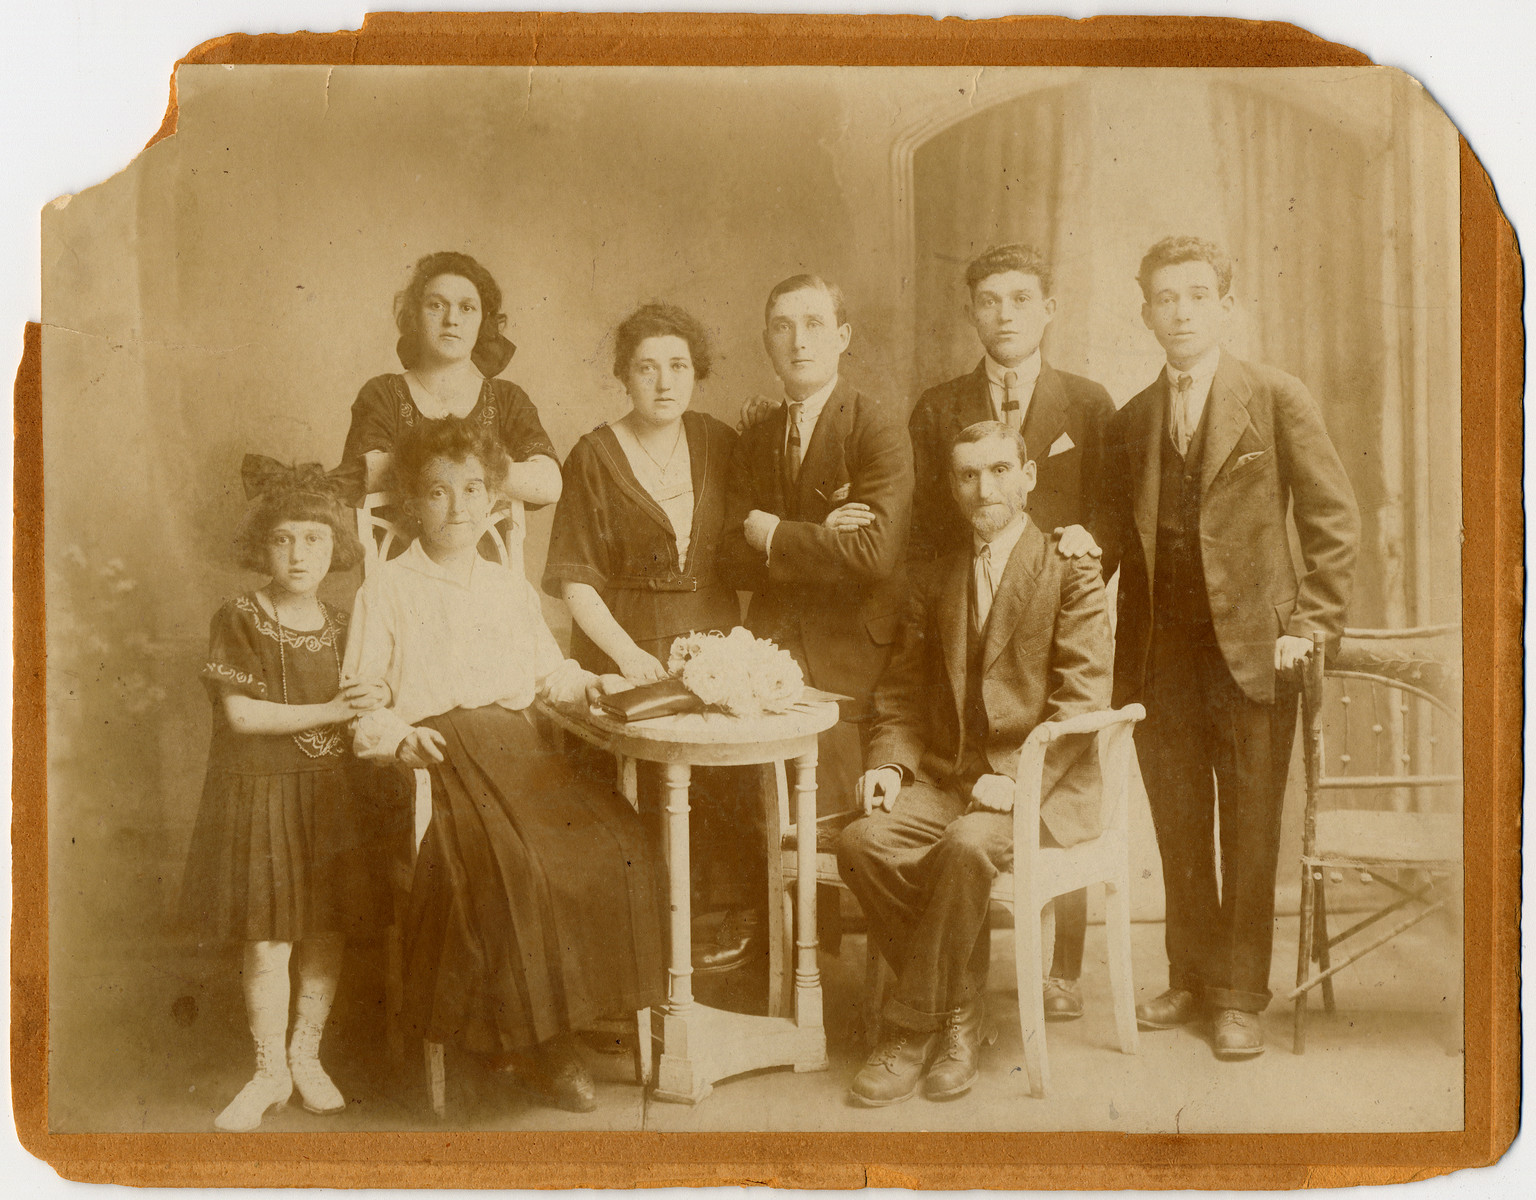 The Dauerman Family poses for a group photograph.  Seated are Rachel and Hirsch Dauerman. Israel Dauerman is on far right with his brother Aaron in the middle. Israel is the only known survivor in this picture. Aaron's son, Mark, immigrated in the United States in 1953.